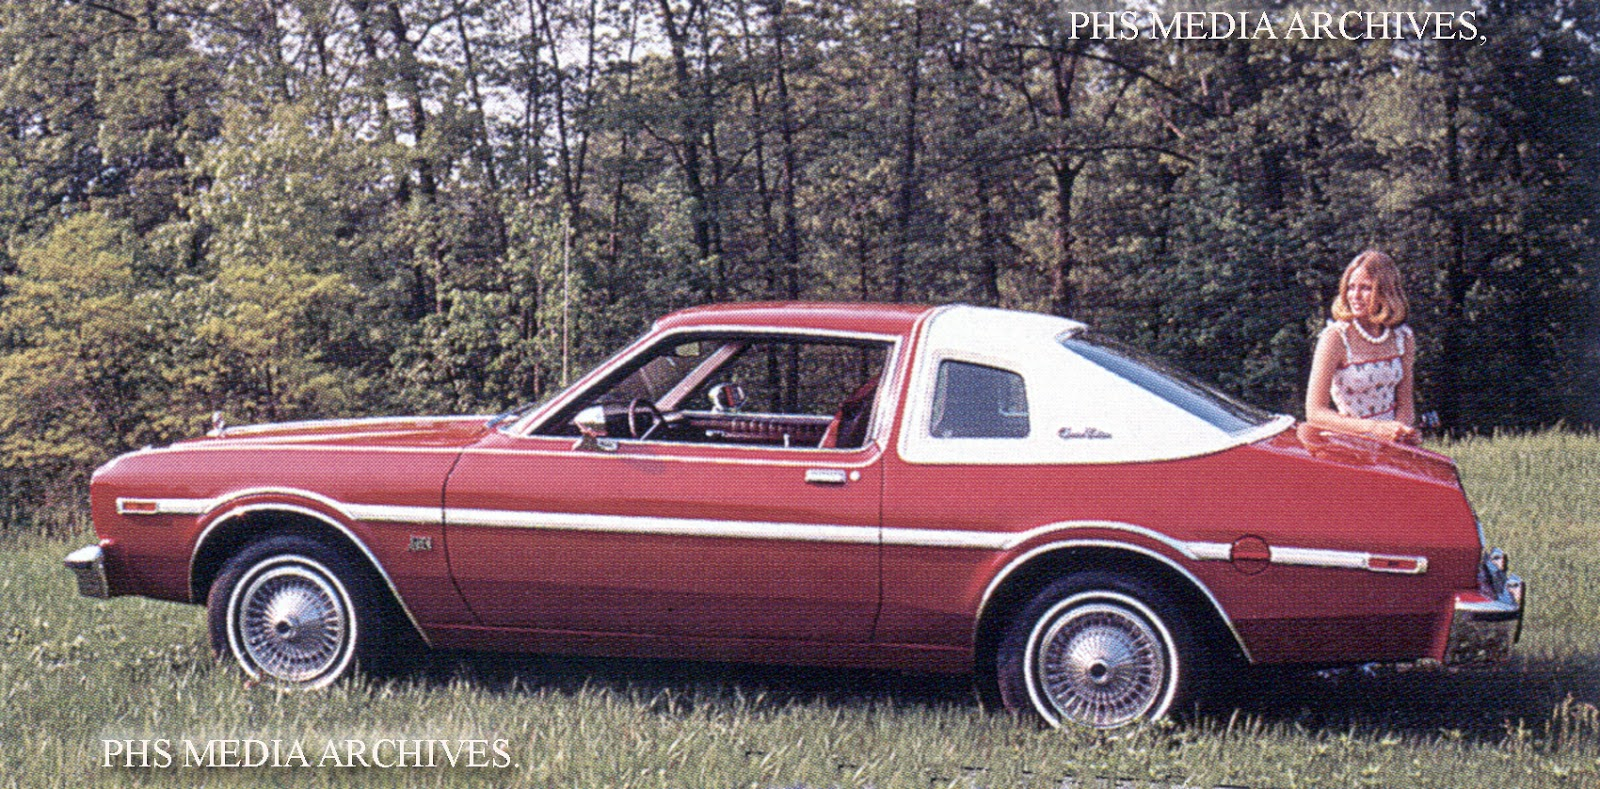 The 1976 Aspen looked the part of a snazzy mid size but sadly wasn't as  well engineered as the Duster it replaced.